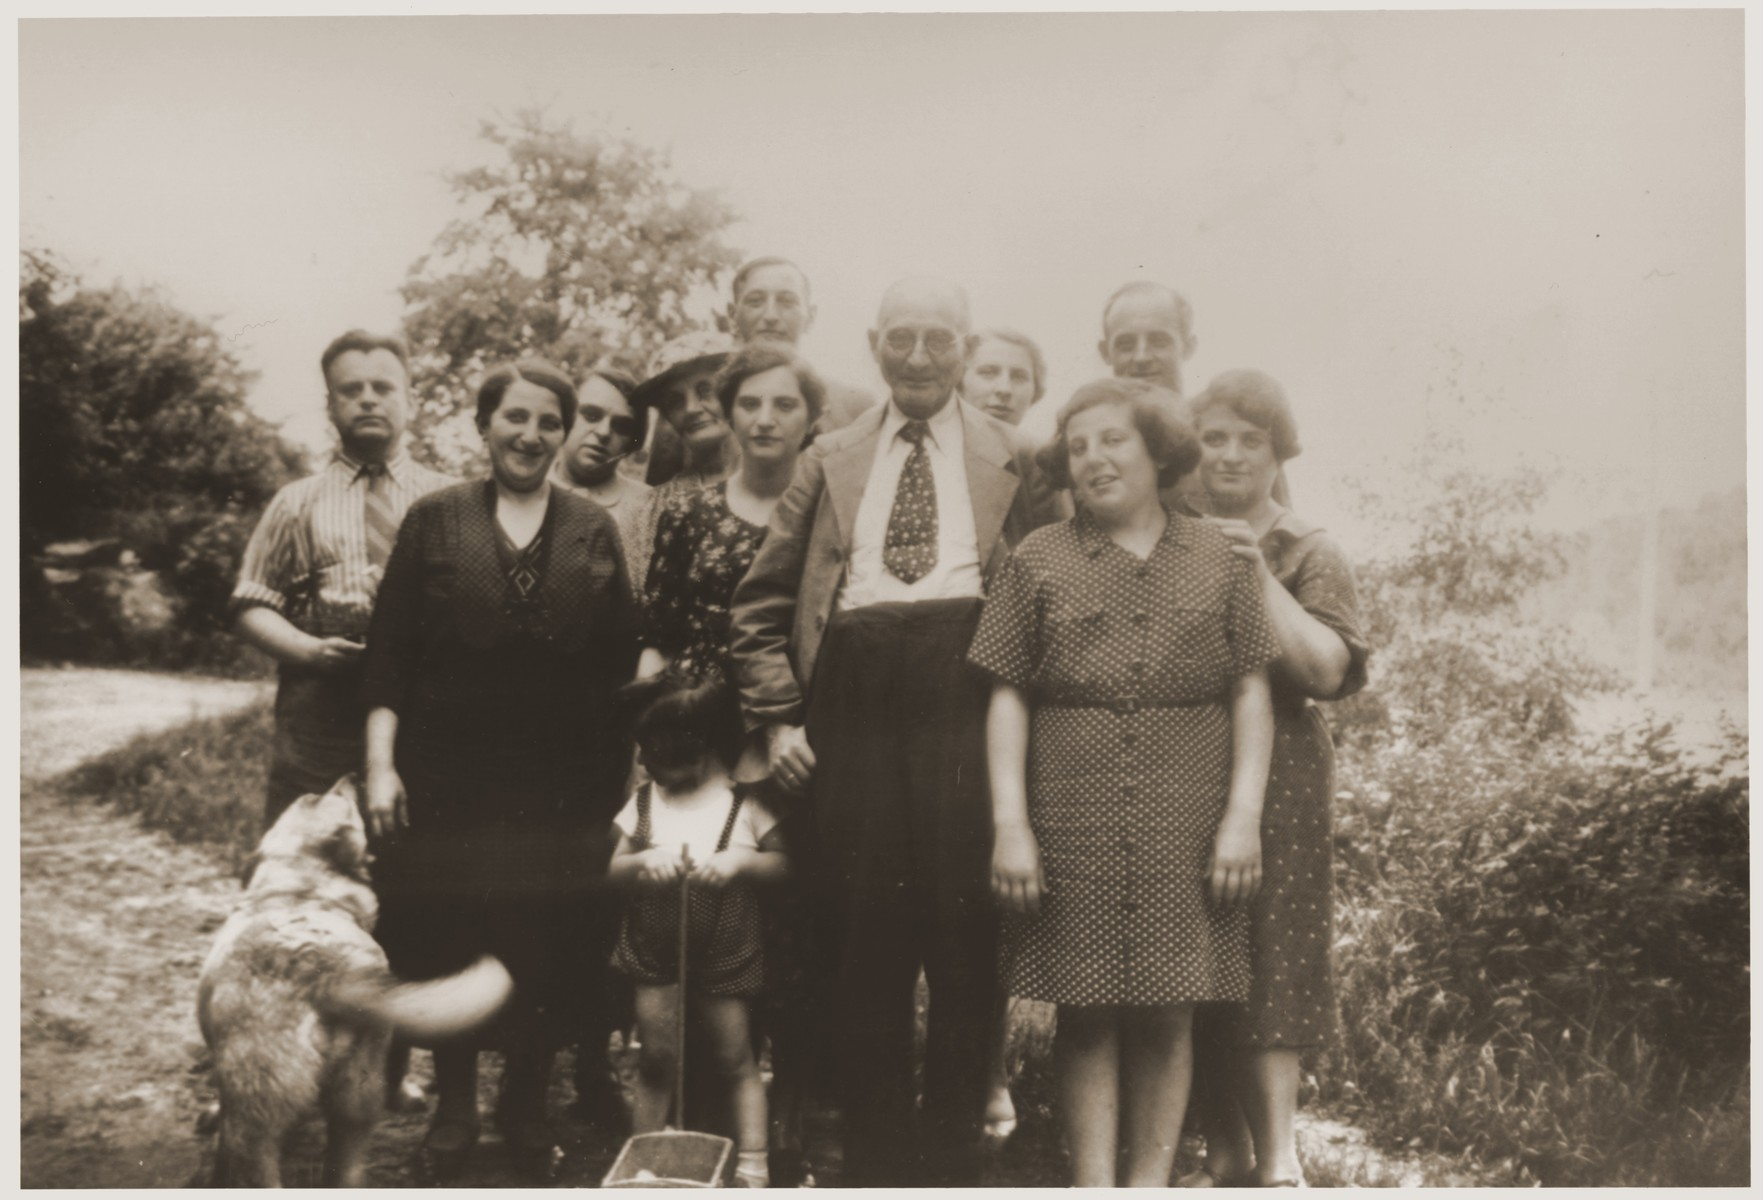 Group portrait of members of the Mendel and Vogel families in front of Sigmund Vogel's house in Nieder-Saulheim,Wollstein, Germany.    Among those pictured are Elsa Mayer Mendel (the donor's grandmother, front row, left), Sigmund Vogel (the donor's grandfather, front row, second from the right), Flora Vogel Mendel (the donor's mother, second row, right) Hannah Nachman Vogel (center, behind child) and Gertrude Mendel Kahn (front row; right).